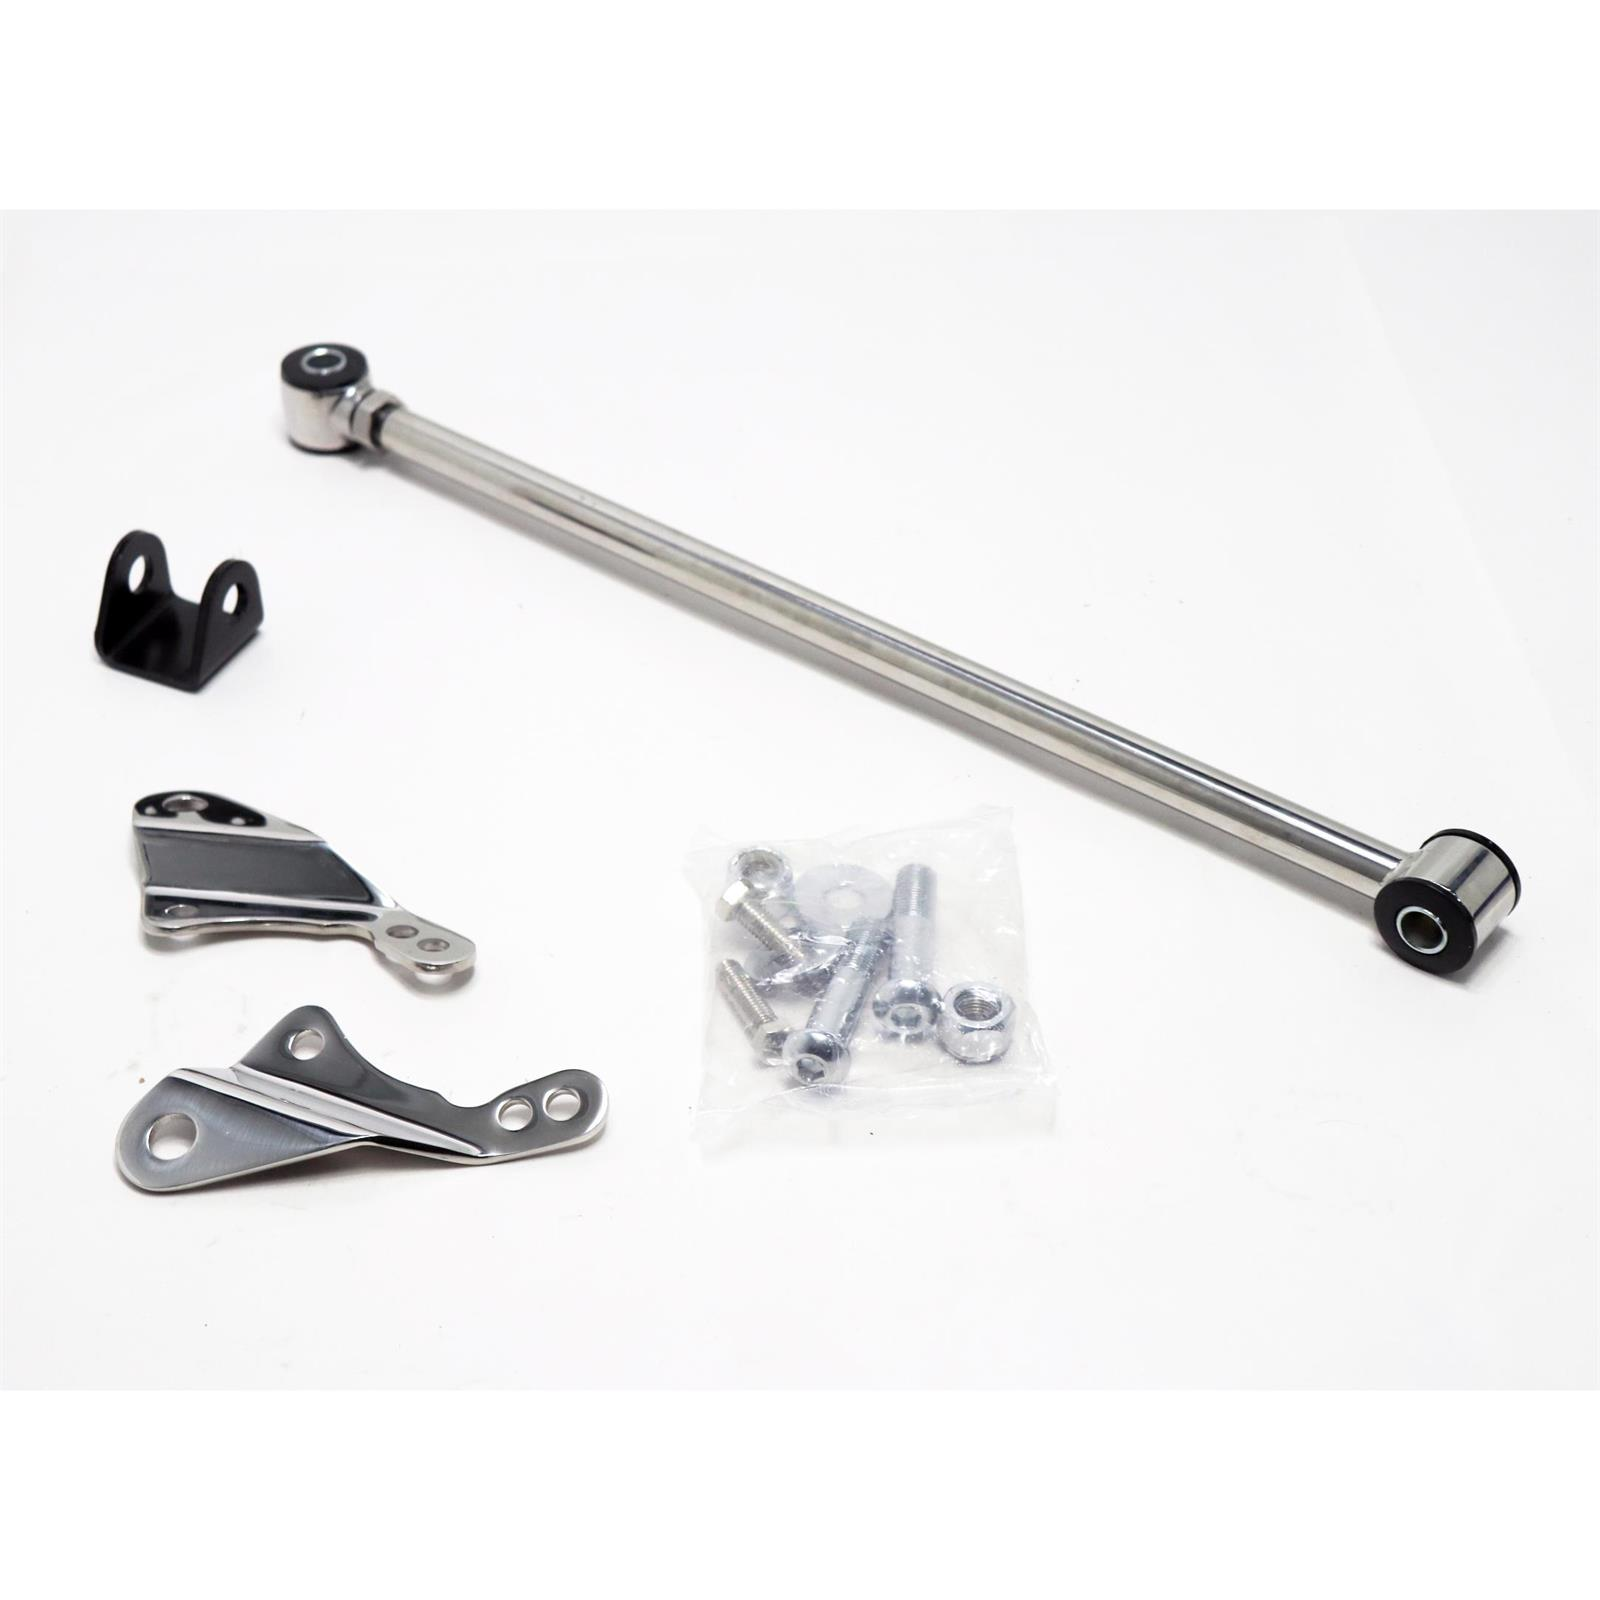 For Ford 8 /& 9 Inch Axle Polished Bolt-On Rear Panhard Bar